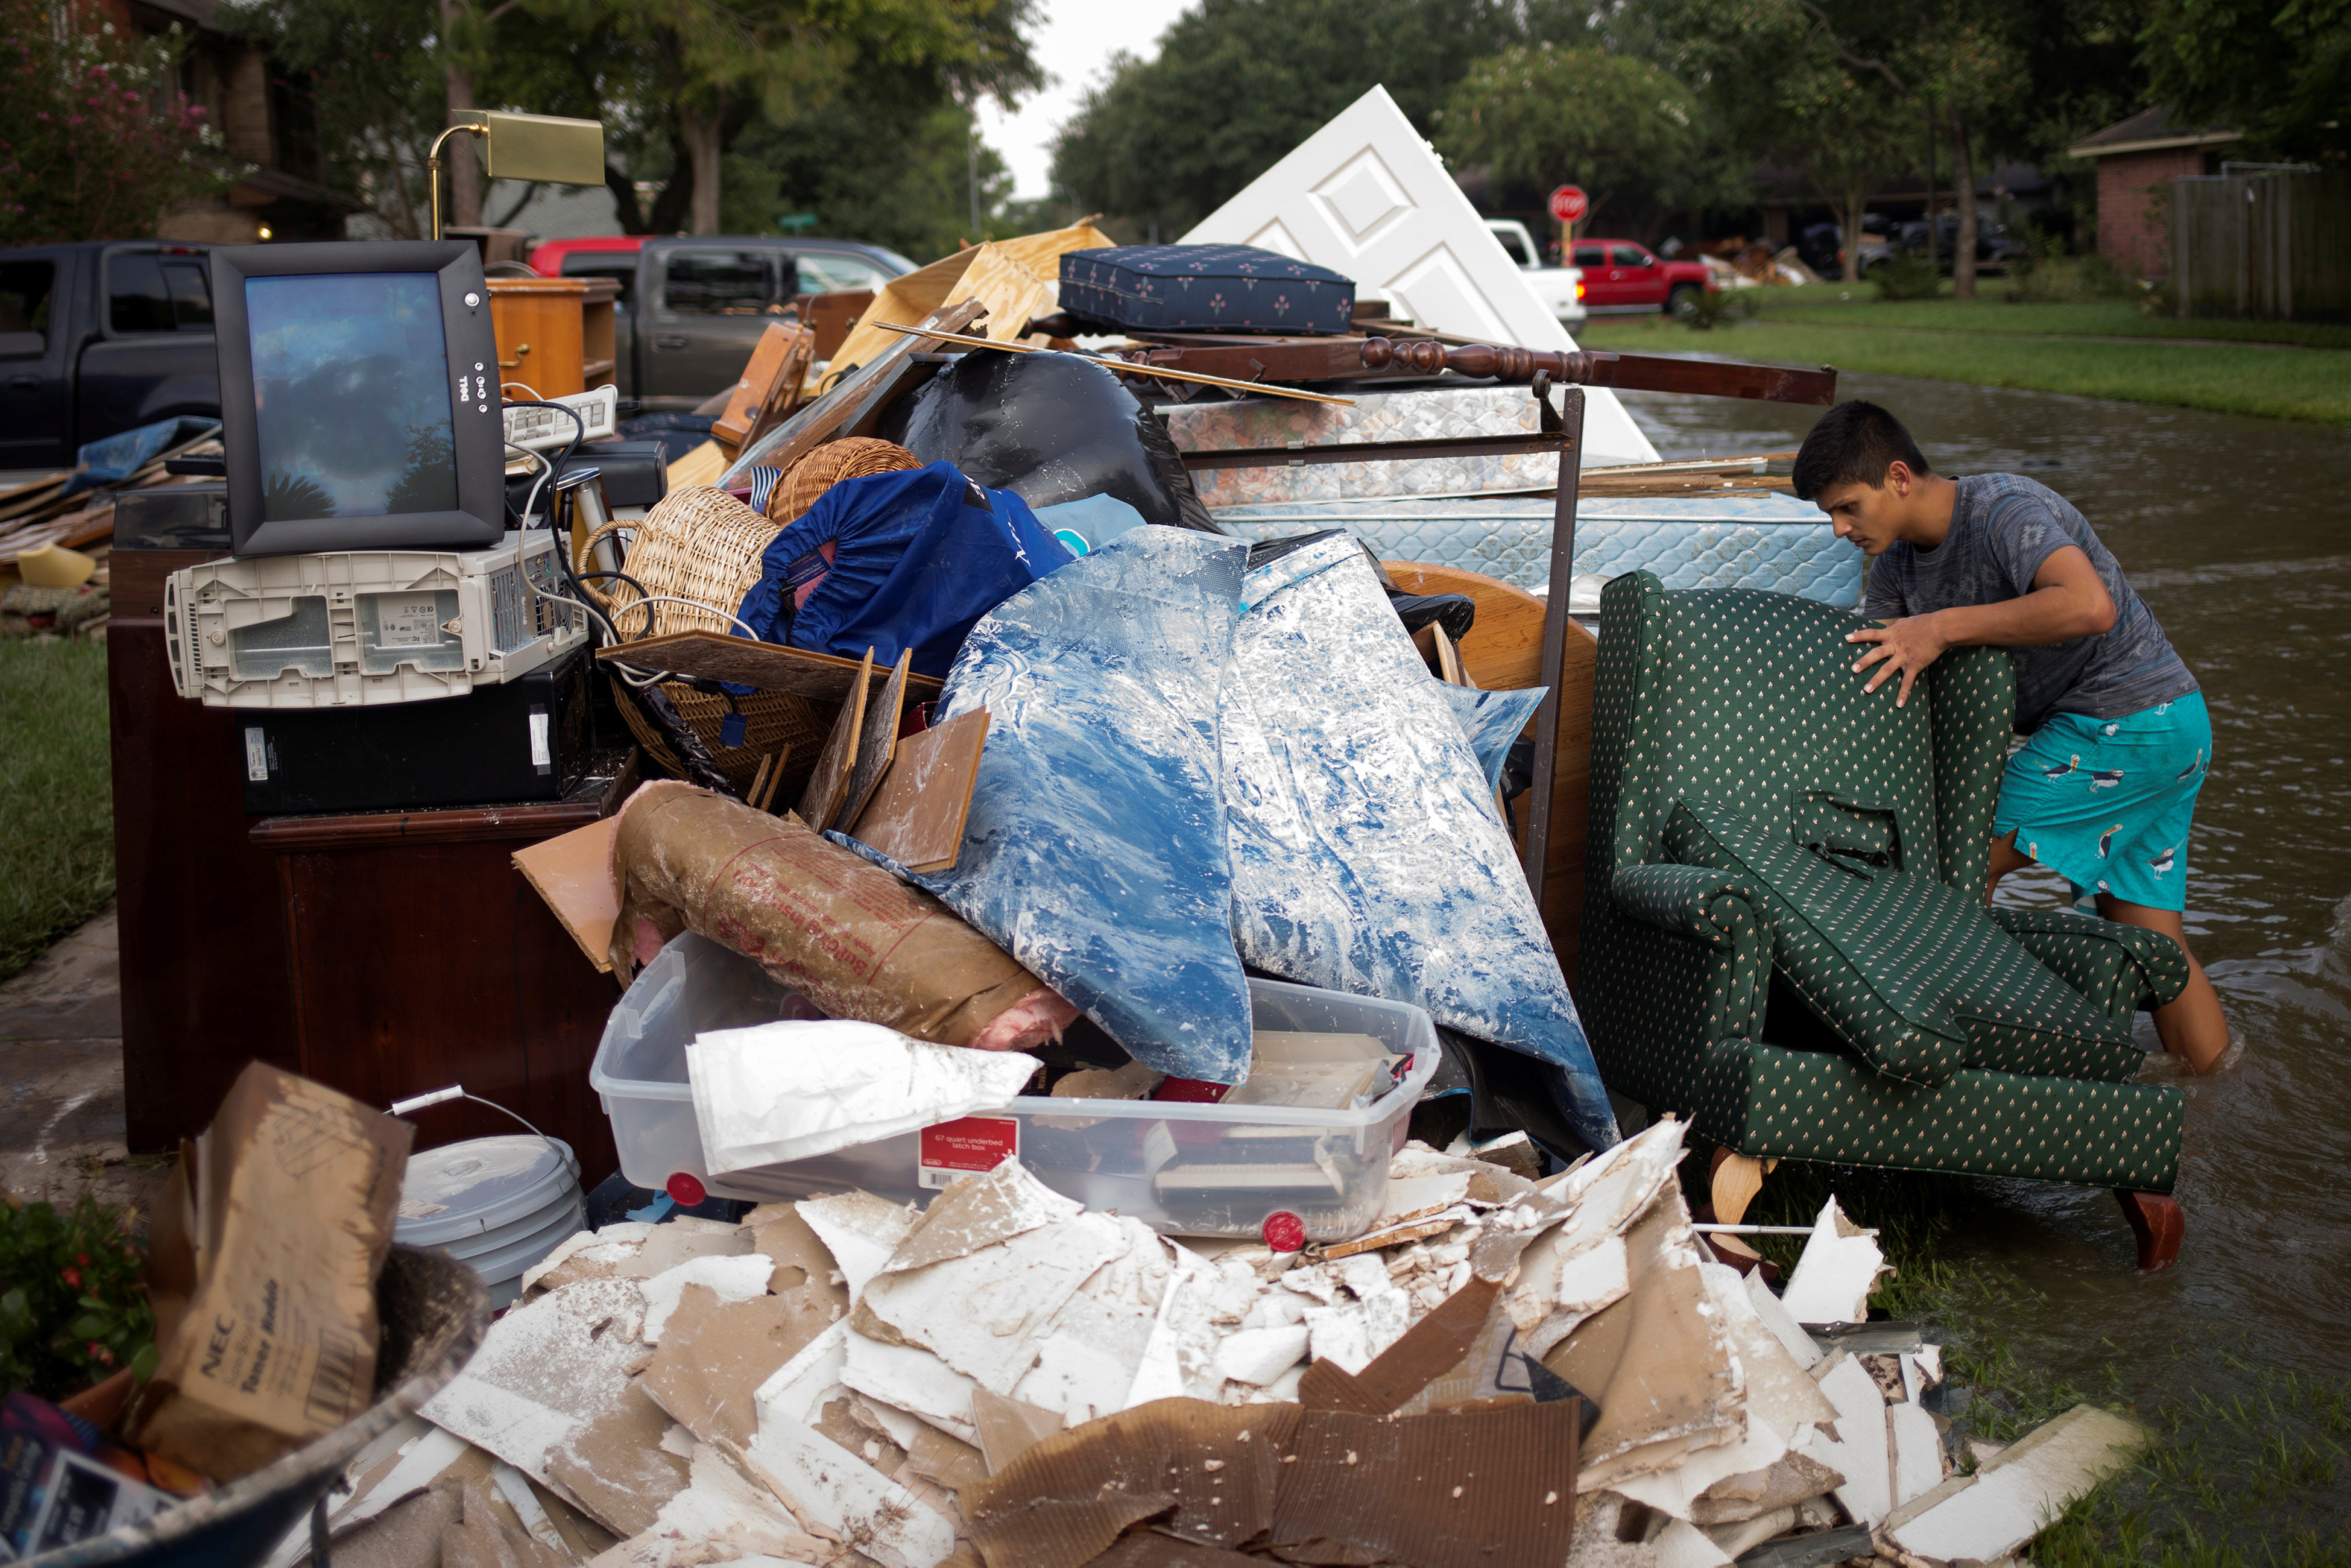 Isaac Zermeno discard furniture from the house of a neighbor who was left flooded from Tropical Storm Harvey in Houston, Texas on Sept. 3, 2017. (REUTERS/Adrees Latif)